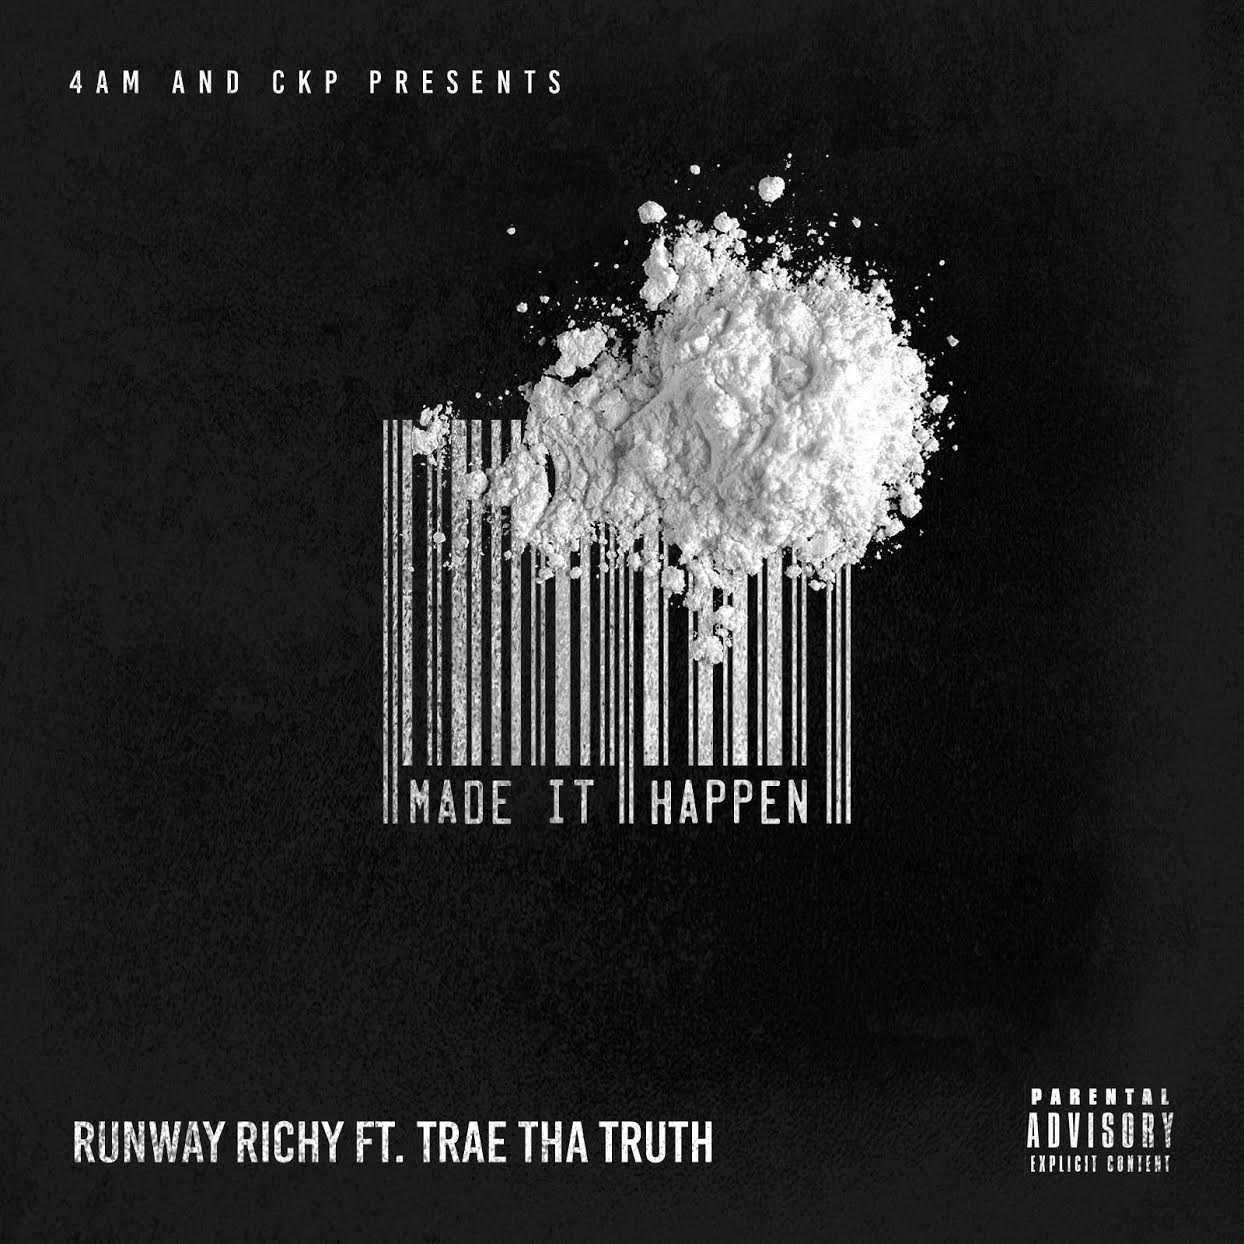 runway-richy-ft-trae-the-truth-make-it-happen